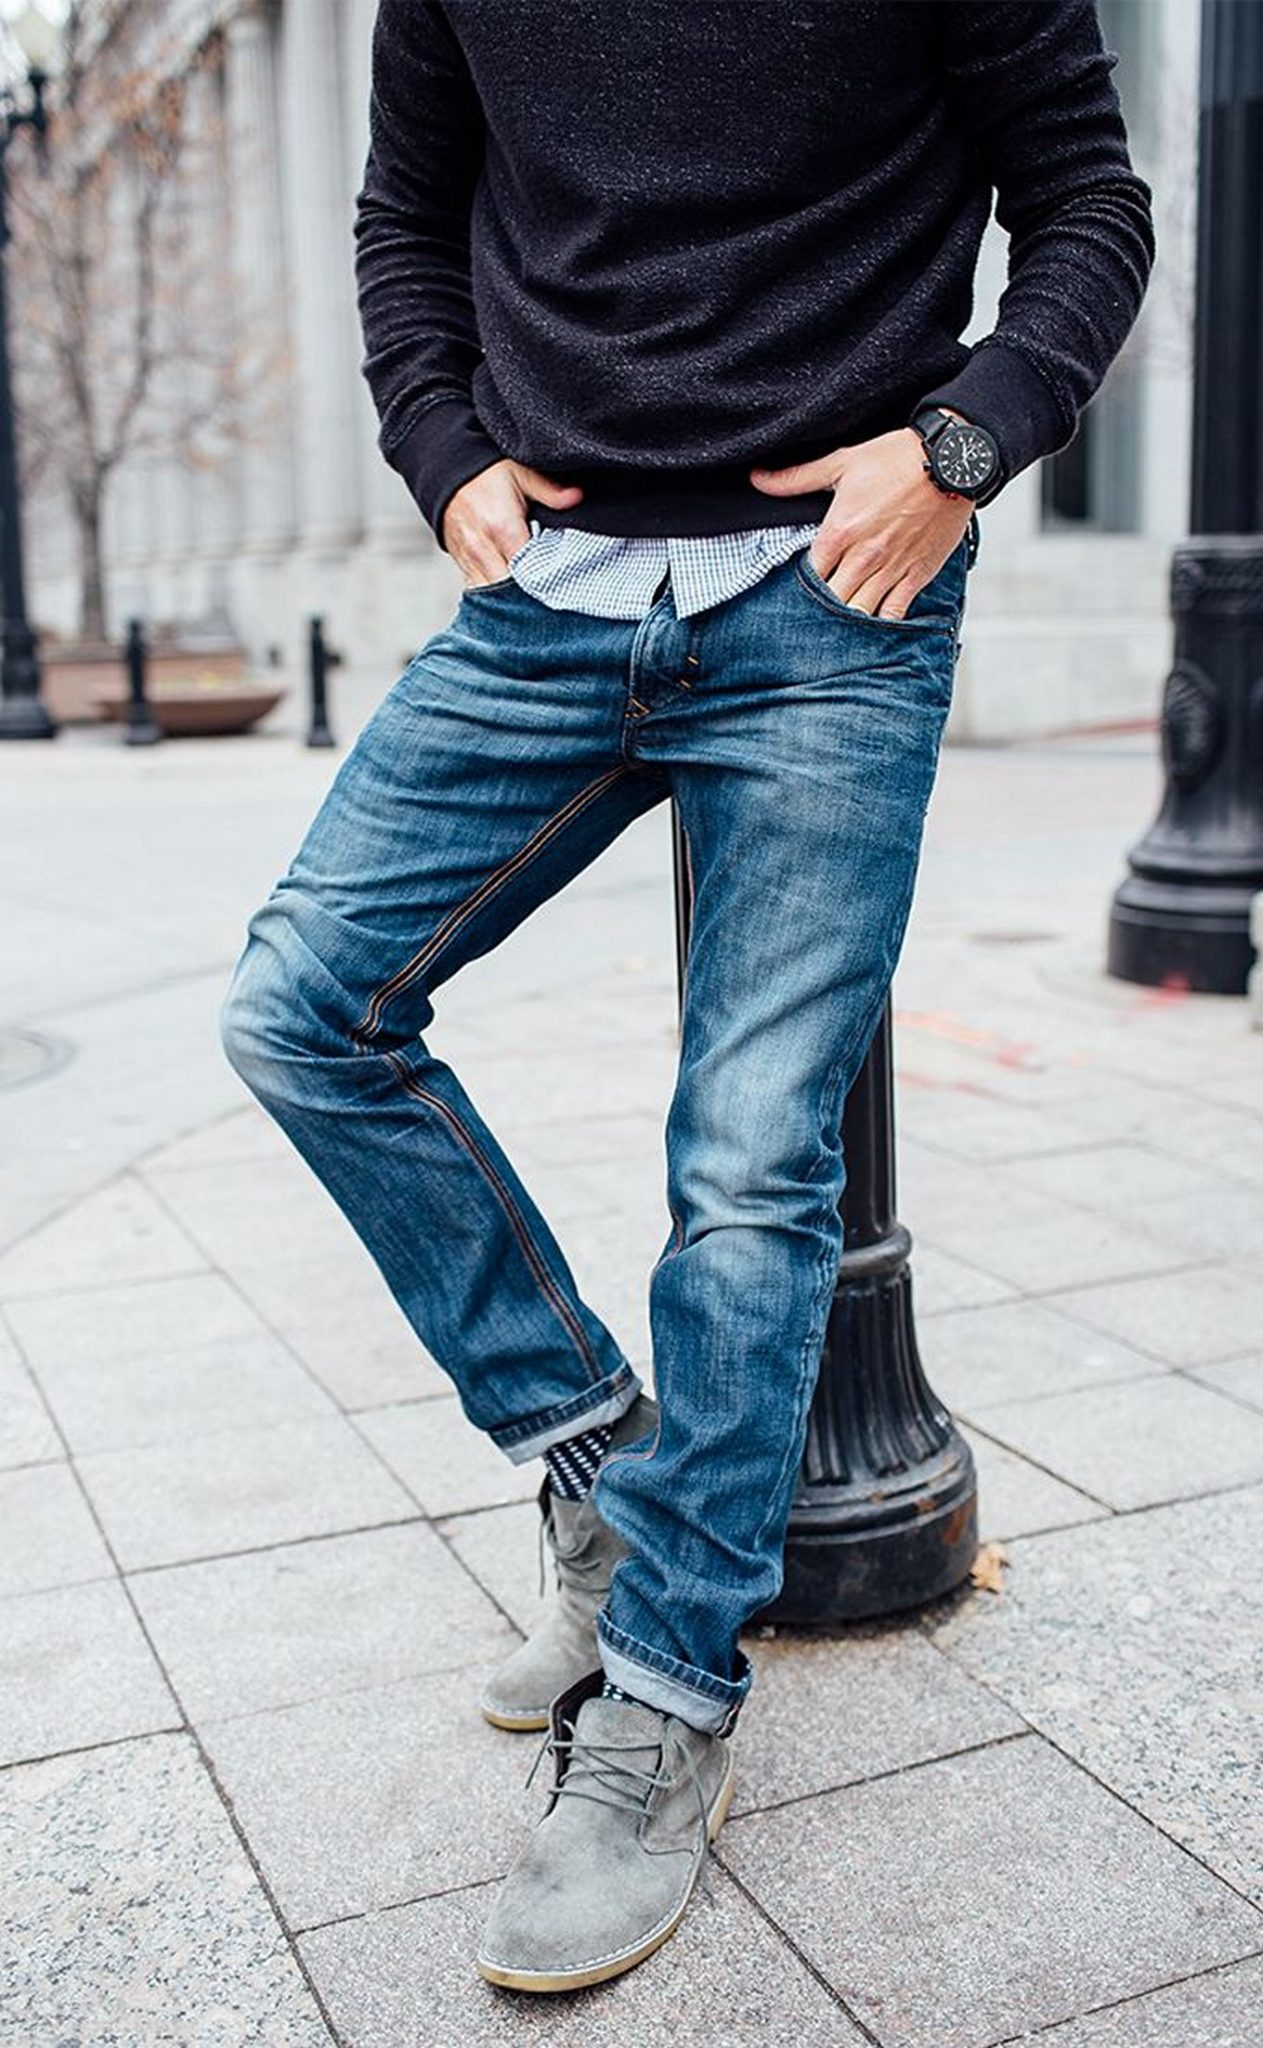 Inspiring wear shoes with jeans (2)